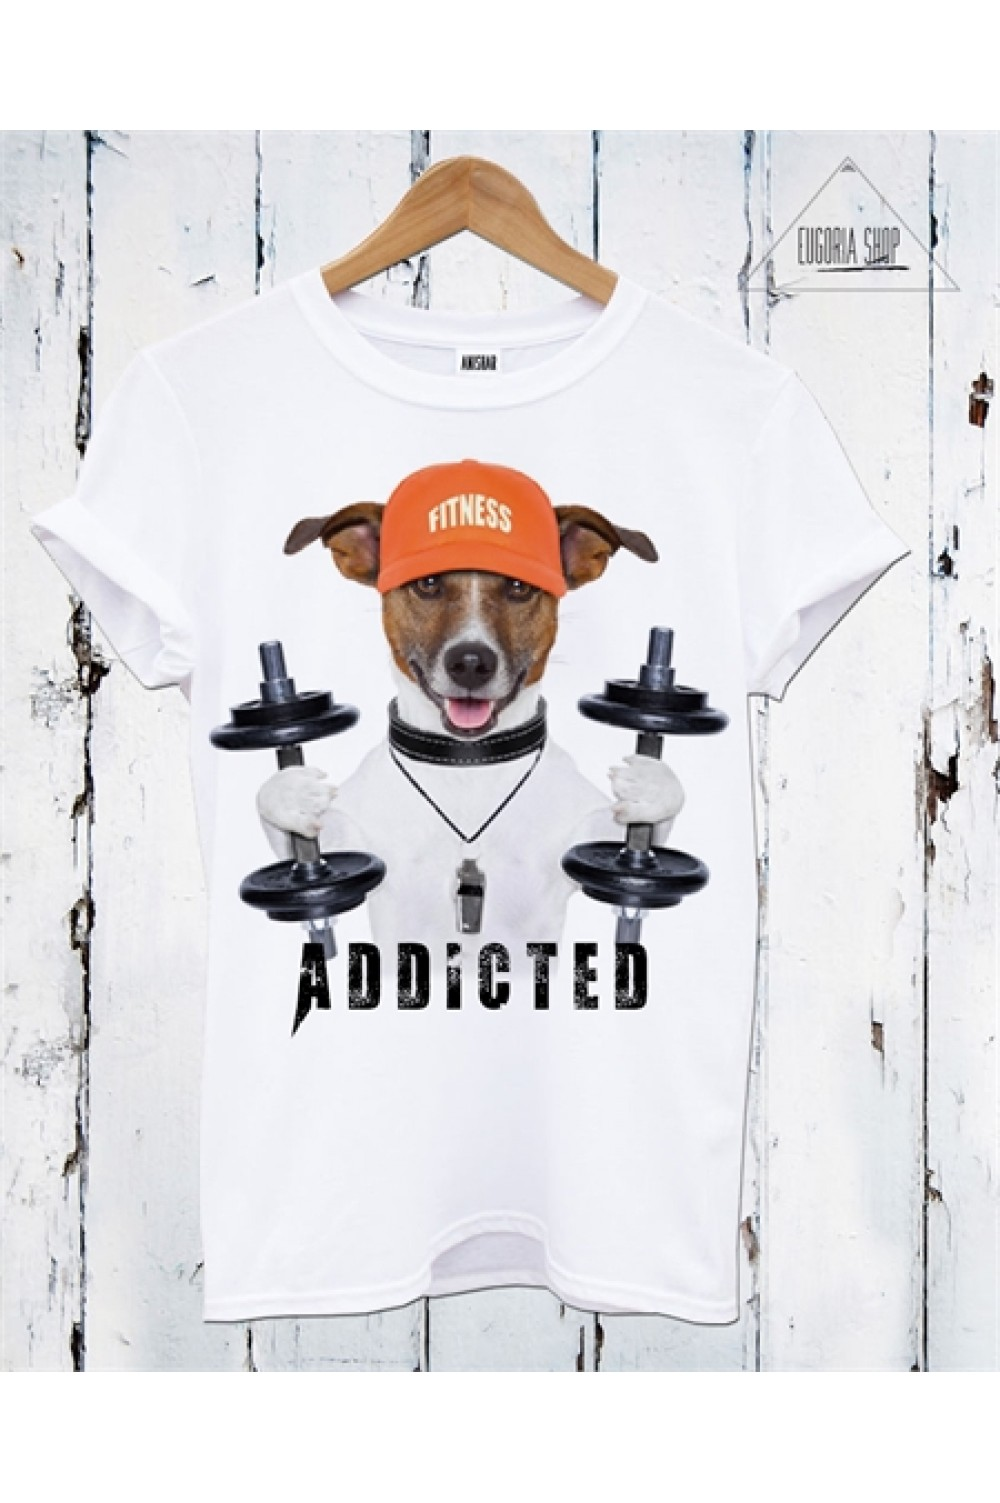 FITNESS ADDICTED Printed T shirt | Men Tank top | DOG Tee | Gym Tee